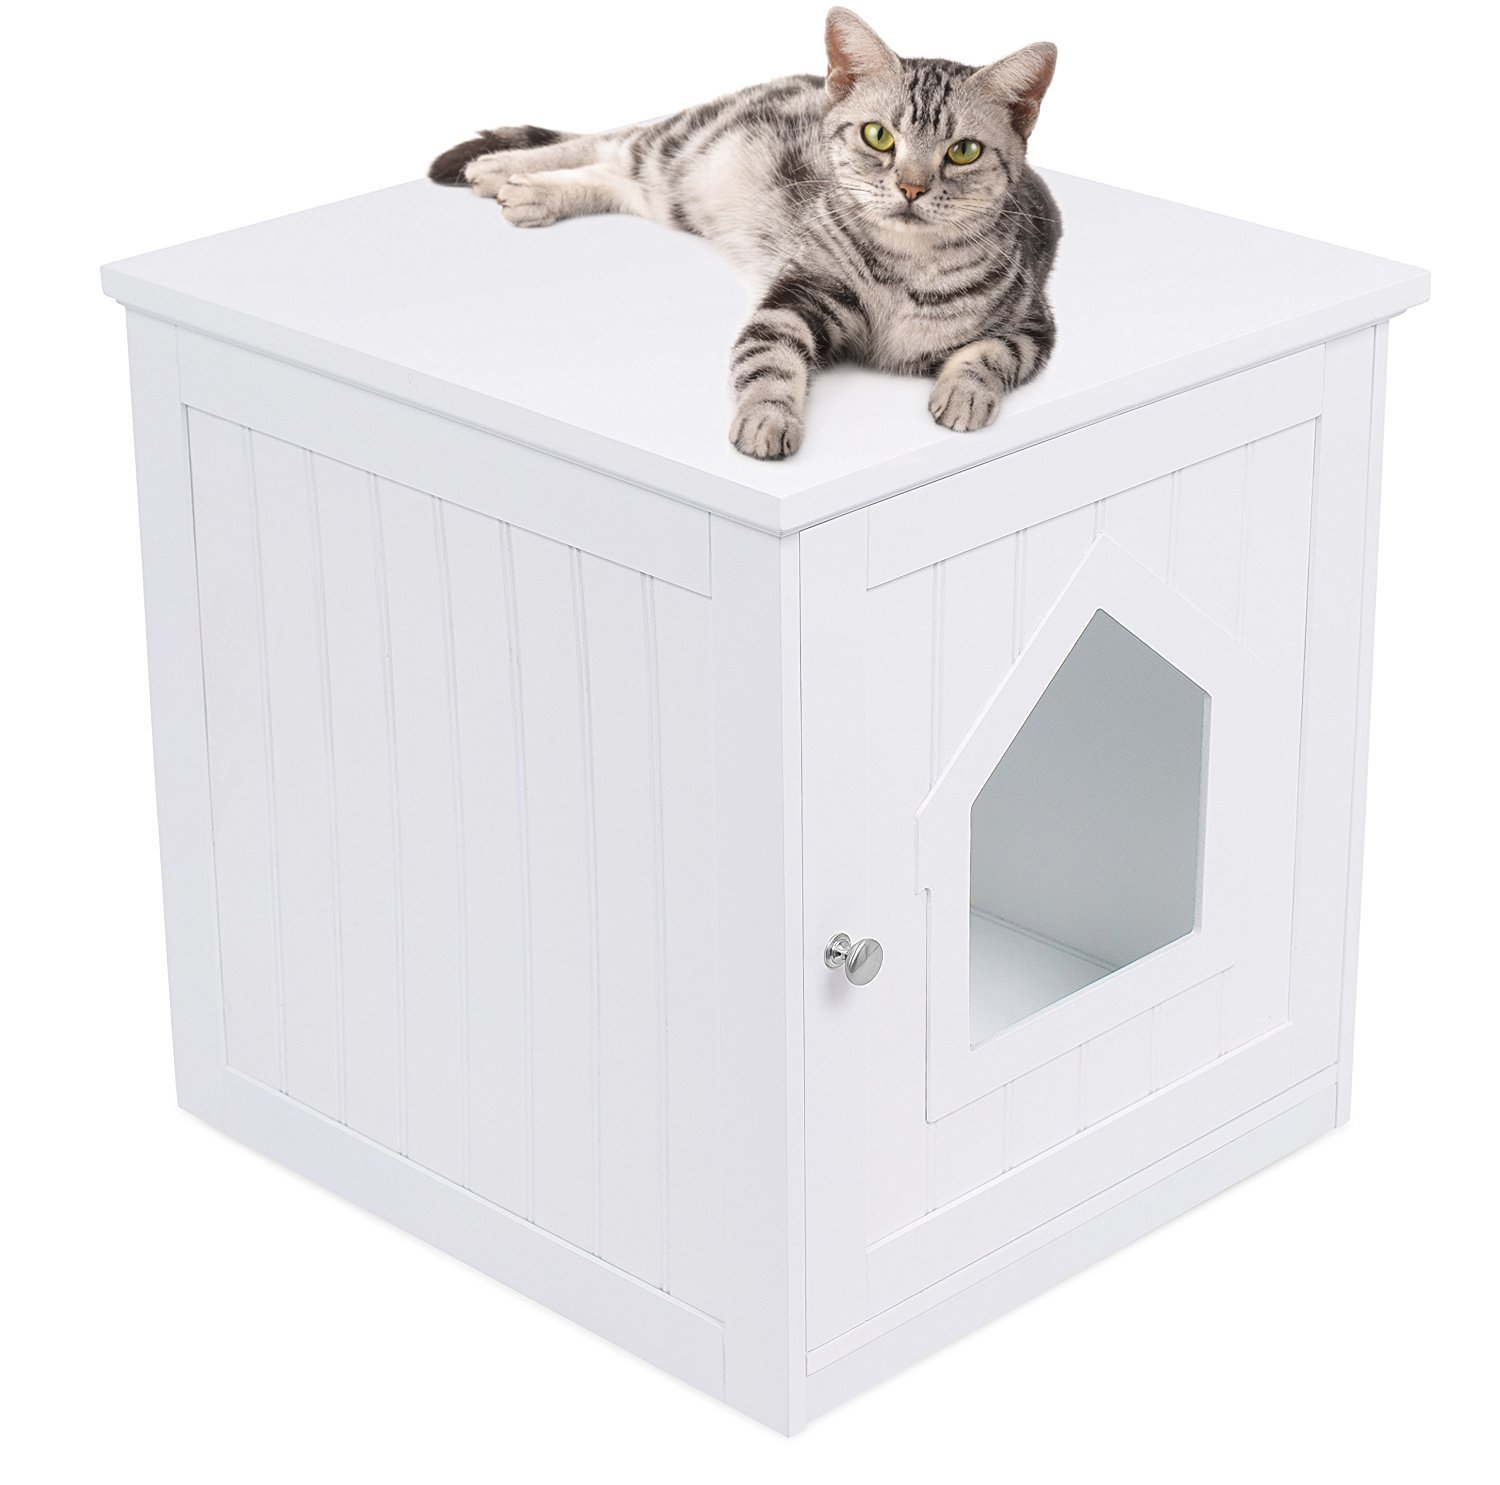 Internet's Best Decorative Cat House & Side Table | Cat Home Nightstand | Indoor Pet Crate | Litter Box Enclosure | Hooded Hidden Pet Box | Cats Furniture Cabinet | Kitty Washroom | White by Internet's Best